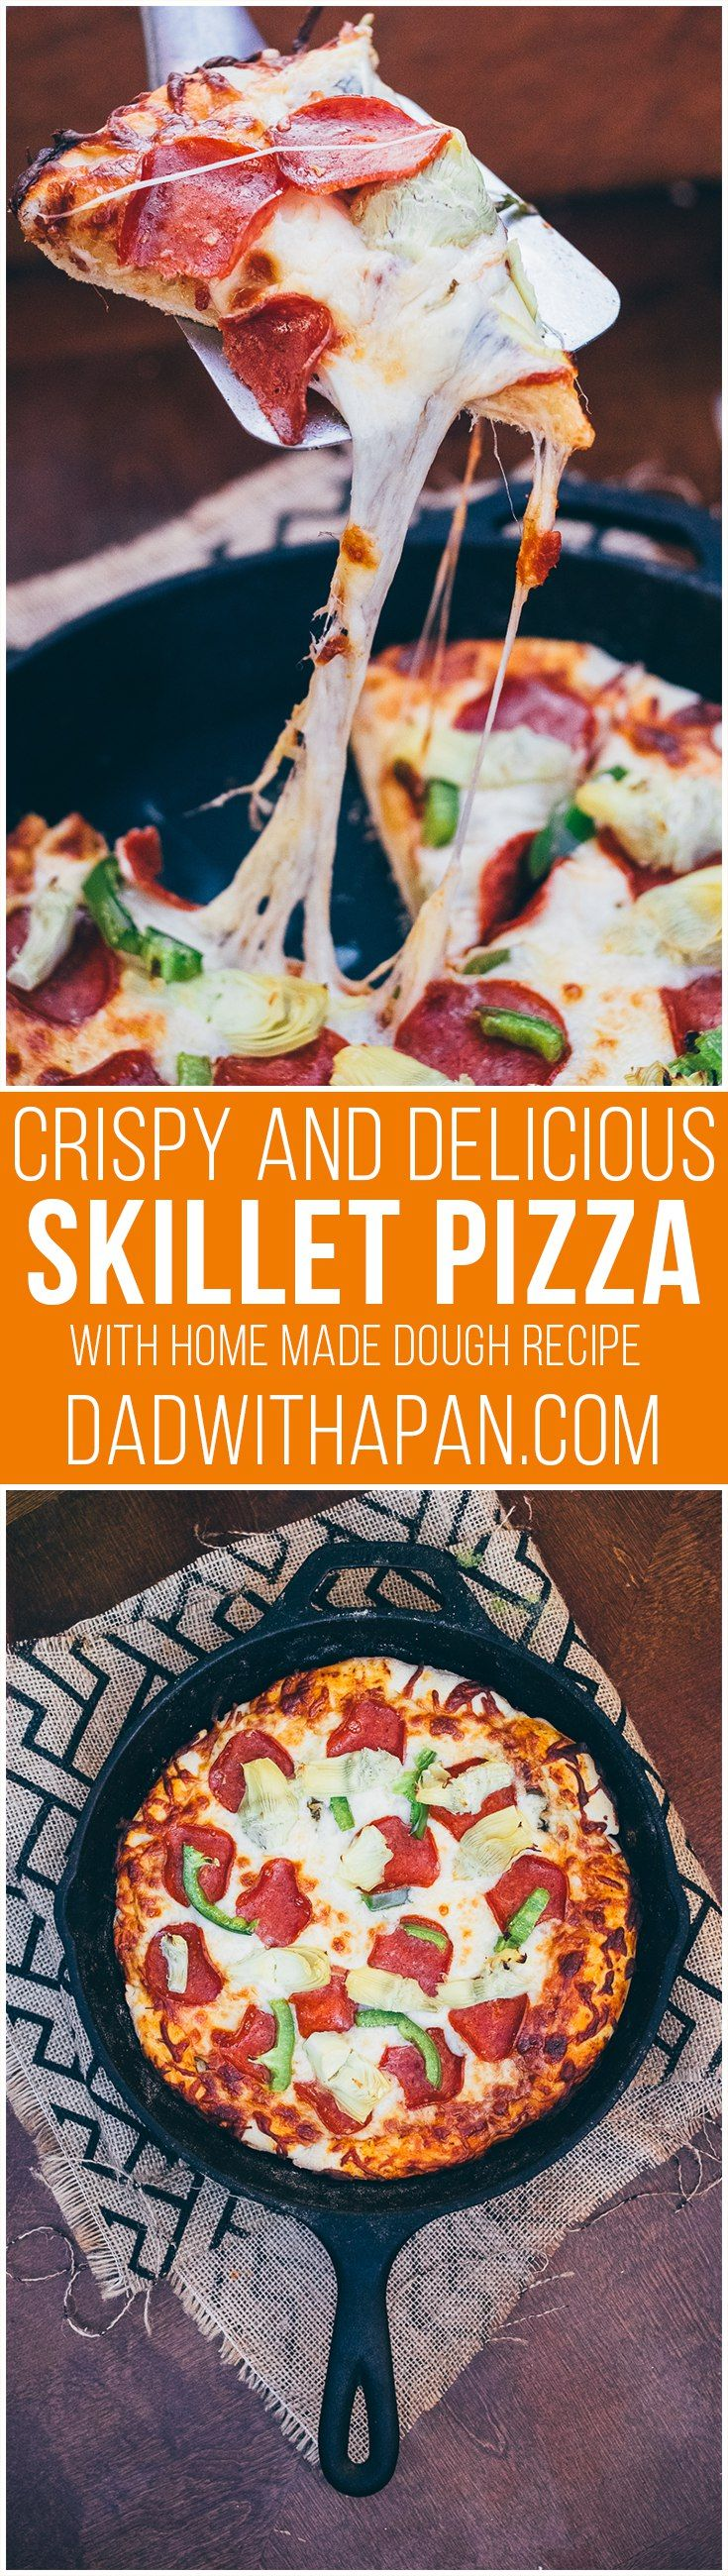 Crispy Skillet Pizza - Dad With A Pan